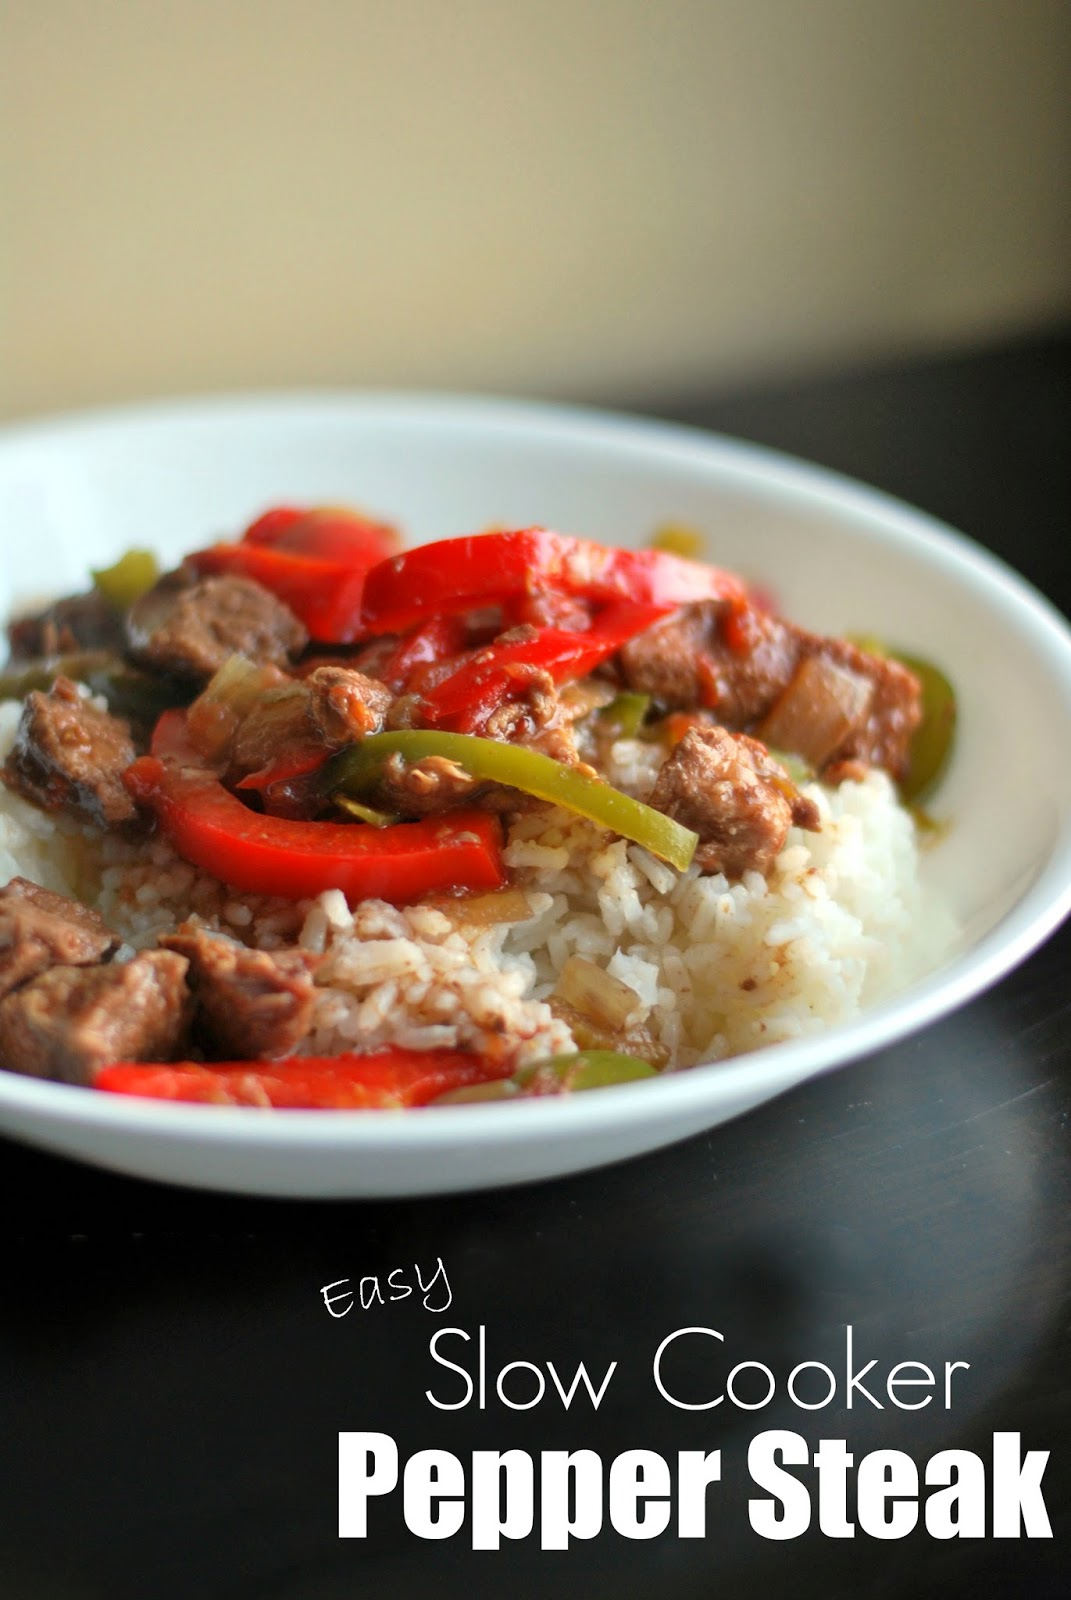 Easy Slow Cooker Pepper Steak - Aunt Bee's Recipes